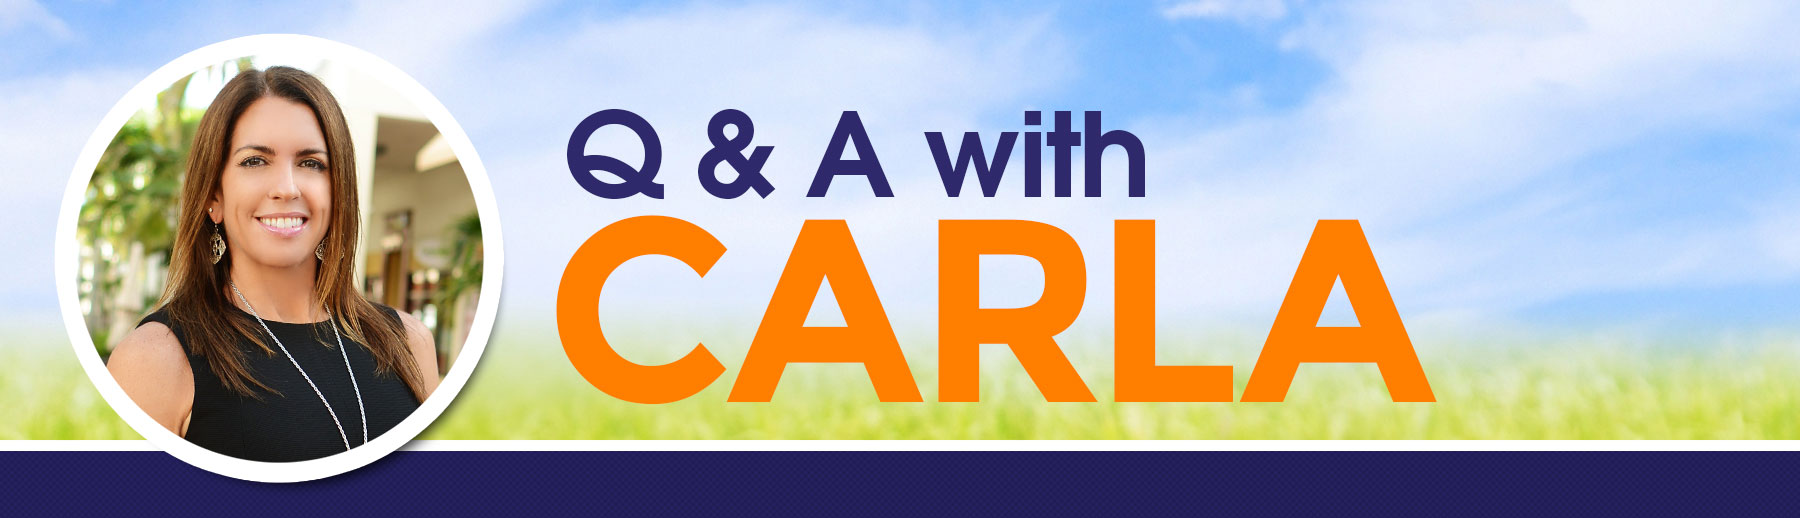 Q and A with Carla